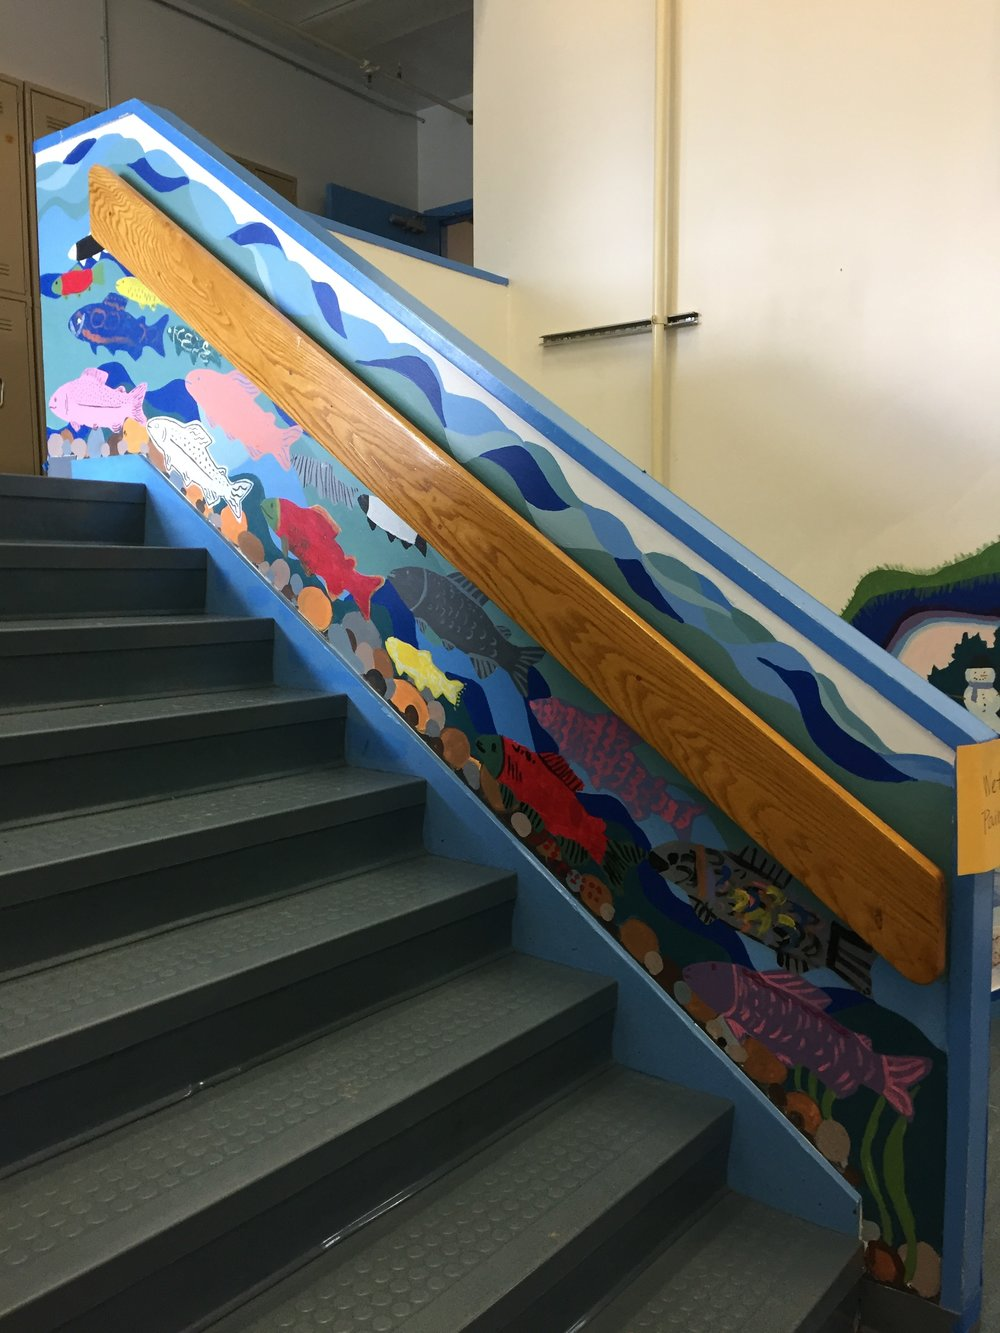 The wall of fish going up the stairs. The students gather here each morning for a school meeting.